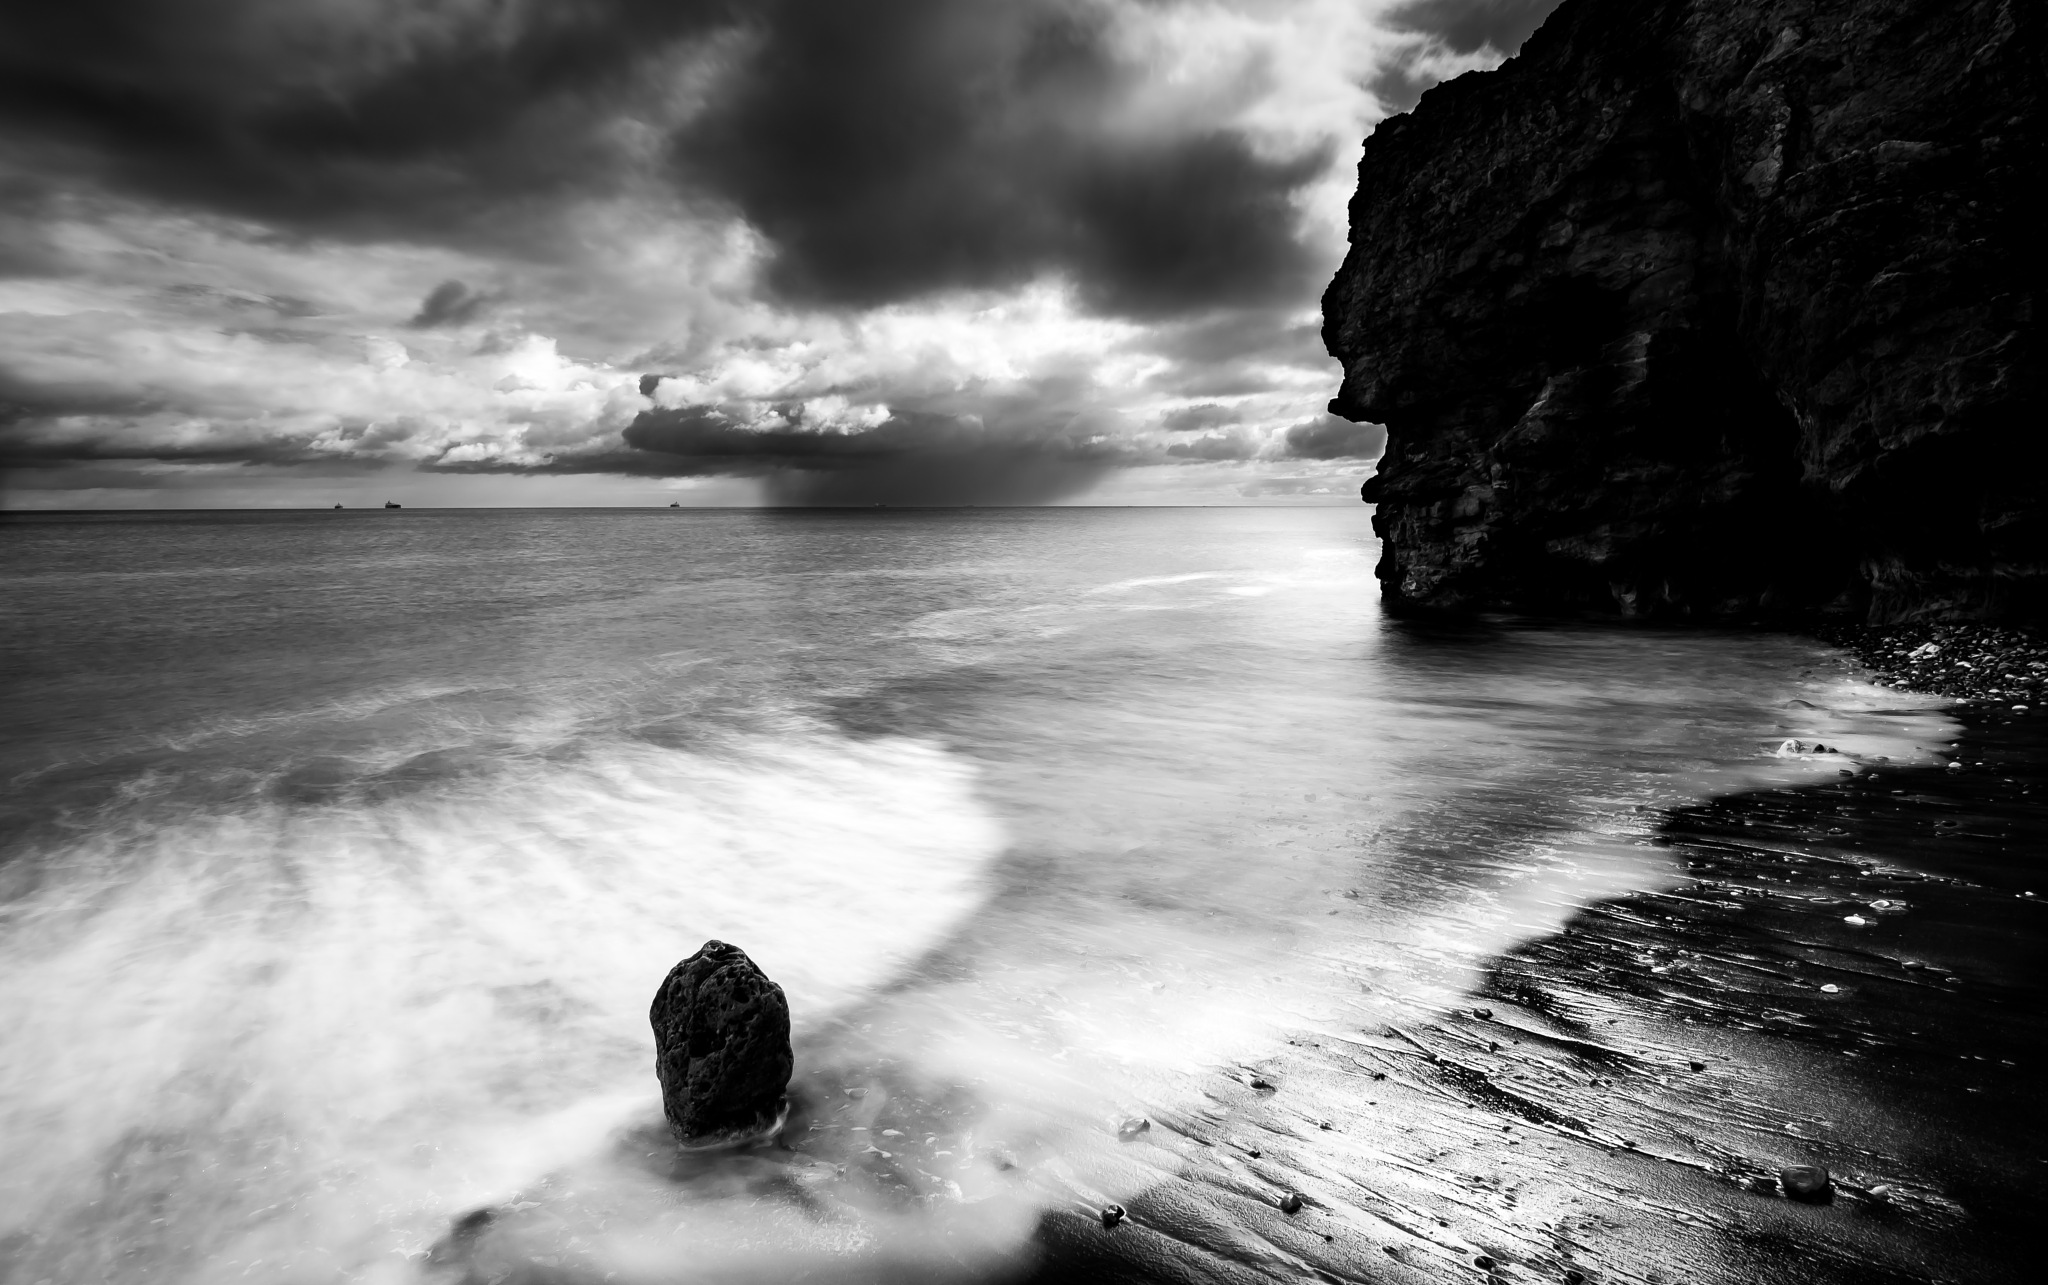 Heavy weather by Peter Edwardo Vicente.